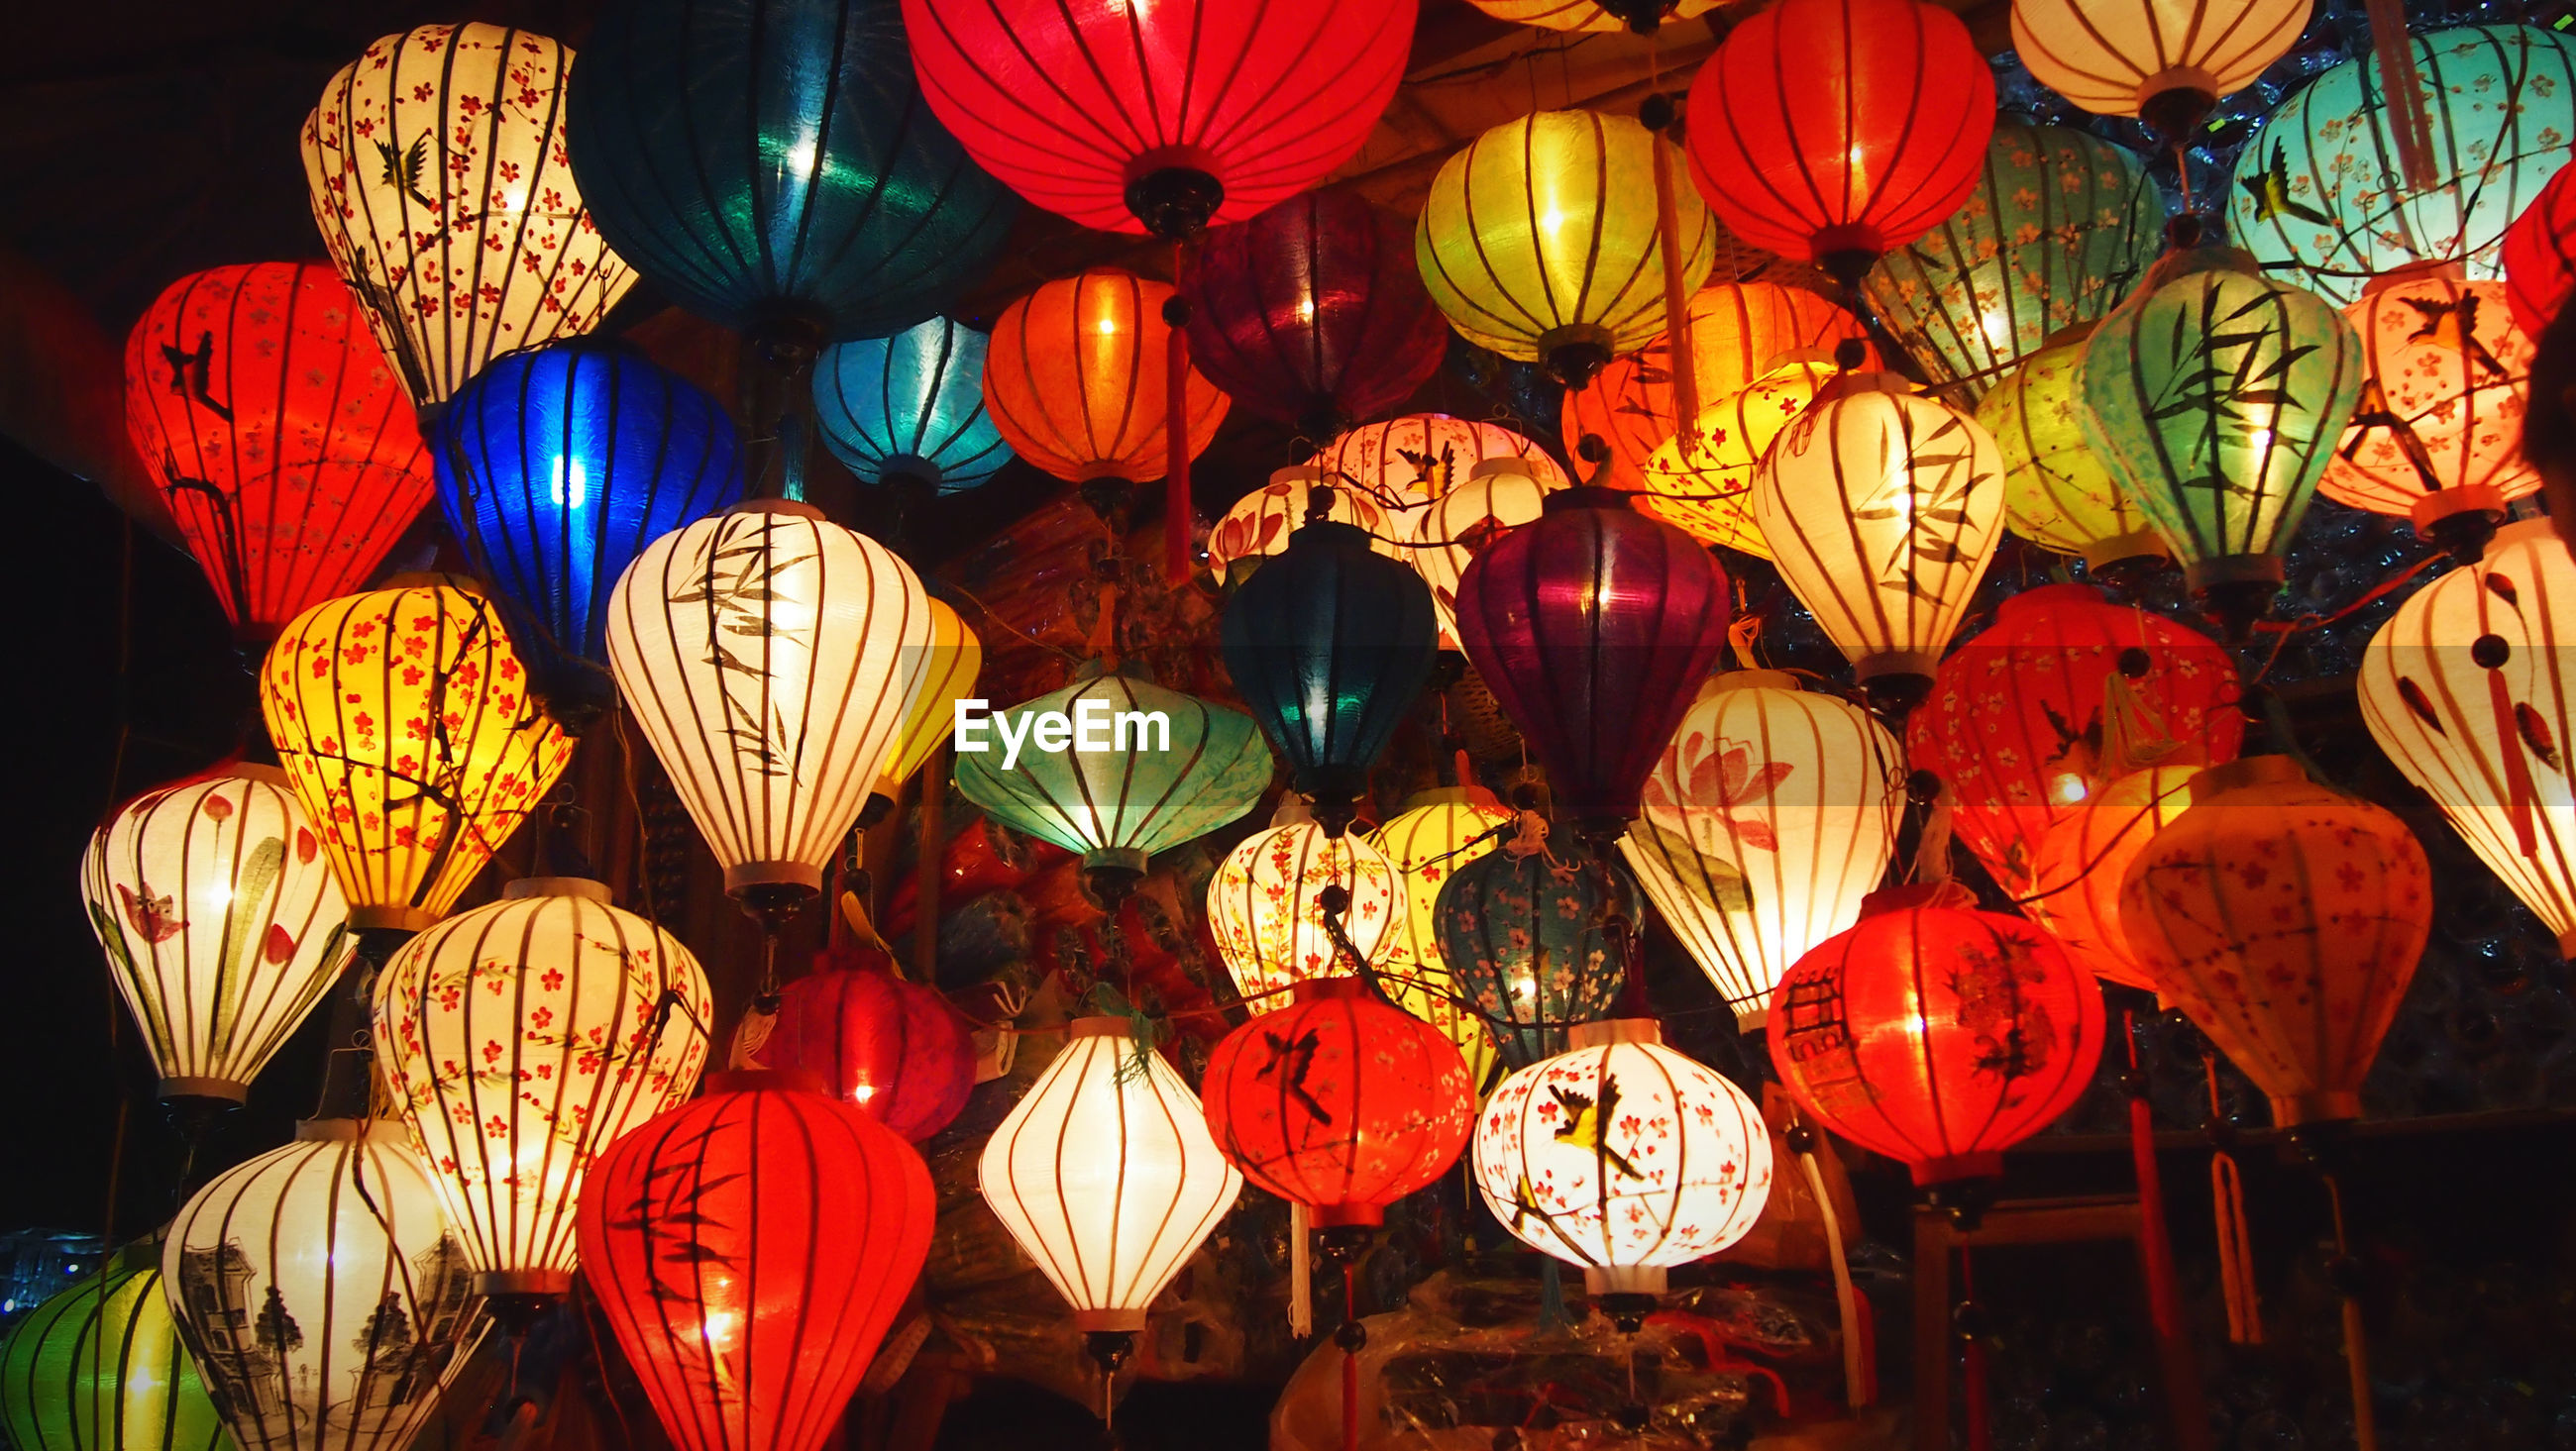 Illuminated lanterns hanging for sale in market at night